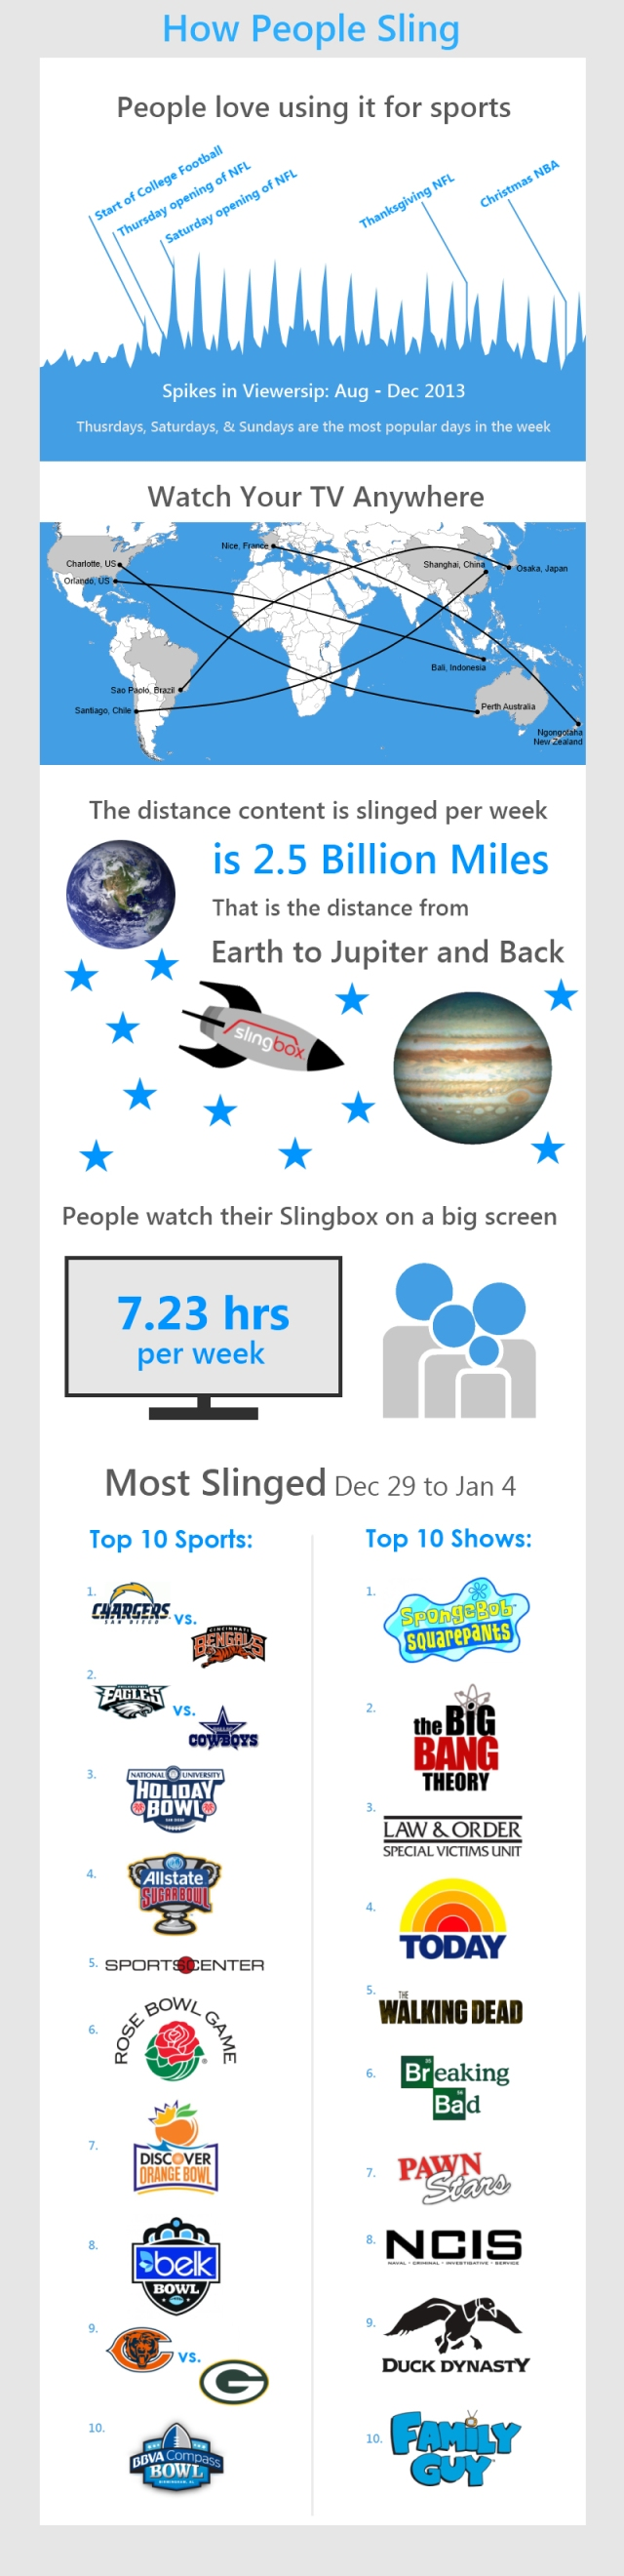 How People Sling infographic - 1/7/14